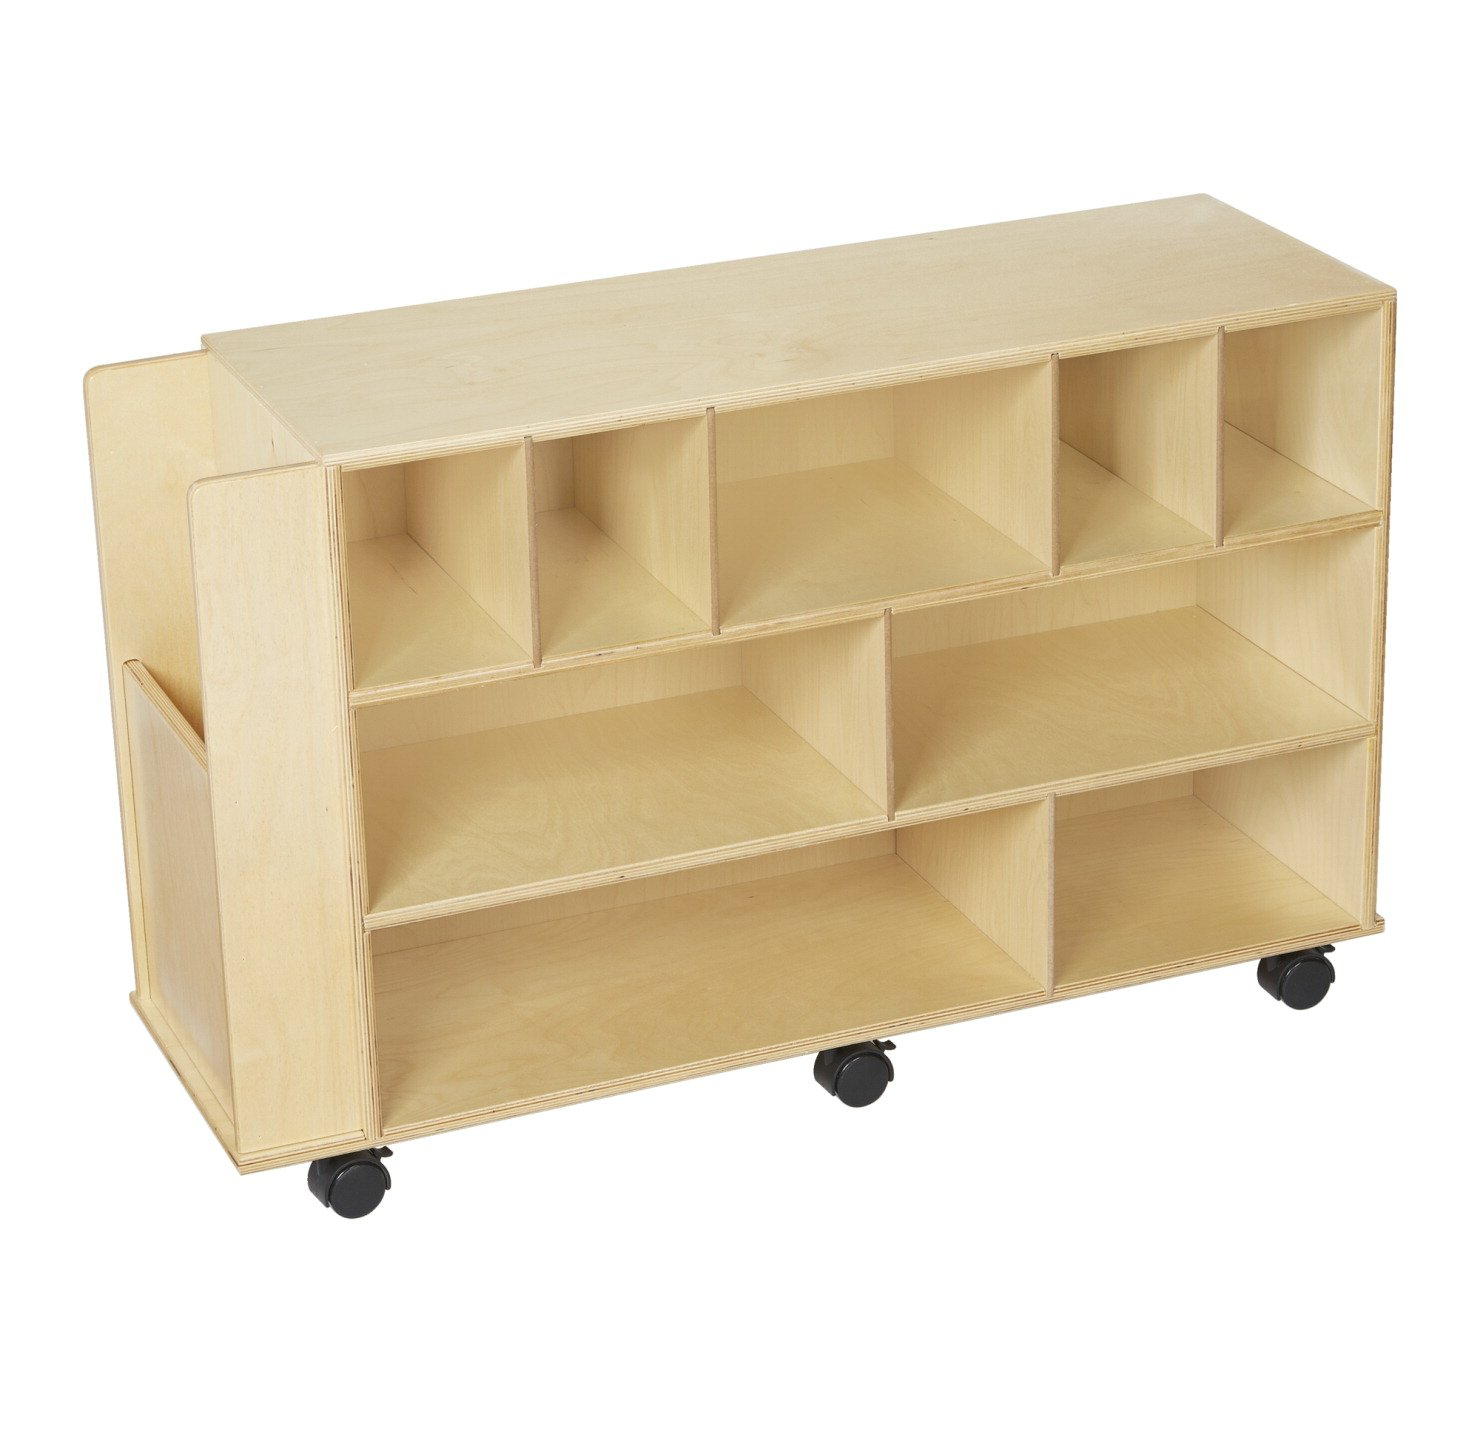 Childcraft Mobile Block Cabinet with End Compartment, 40-1/4 x 13 x 24-7/8 Inches